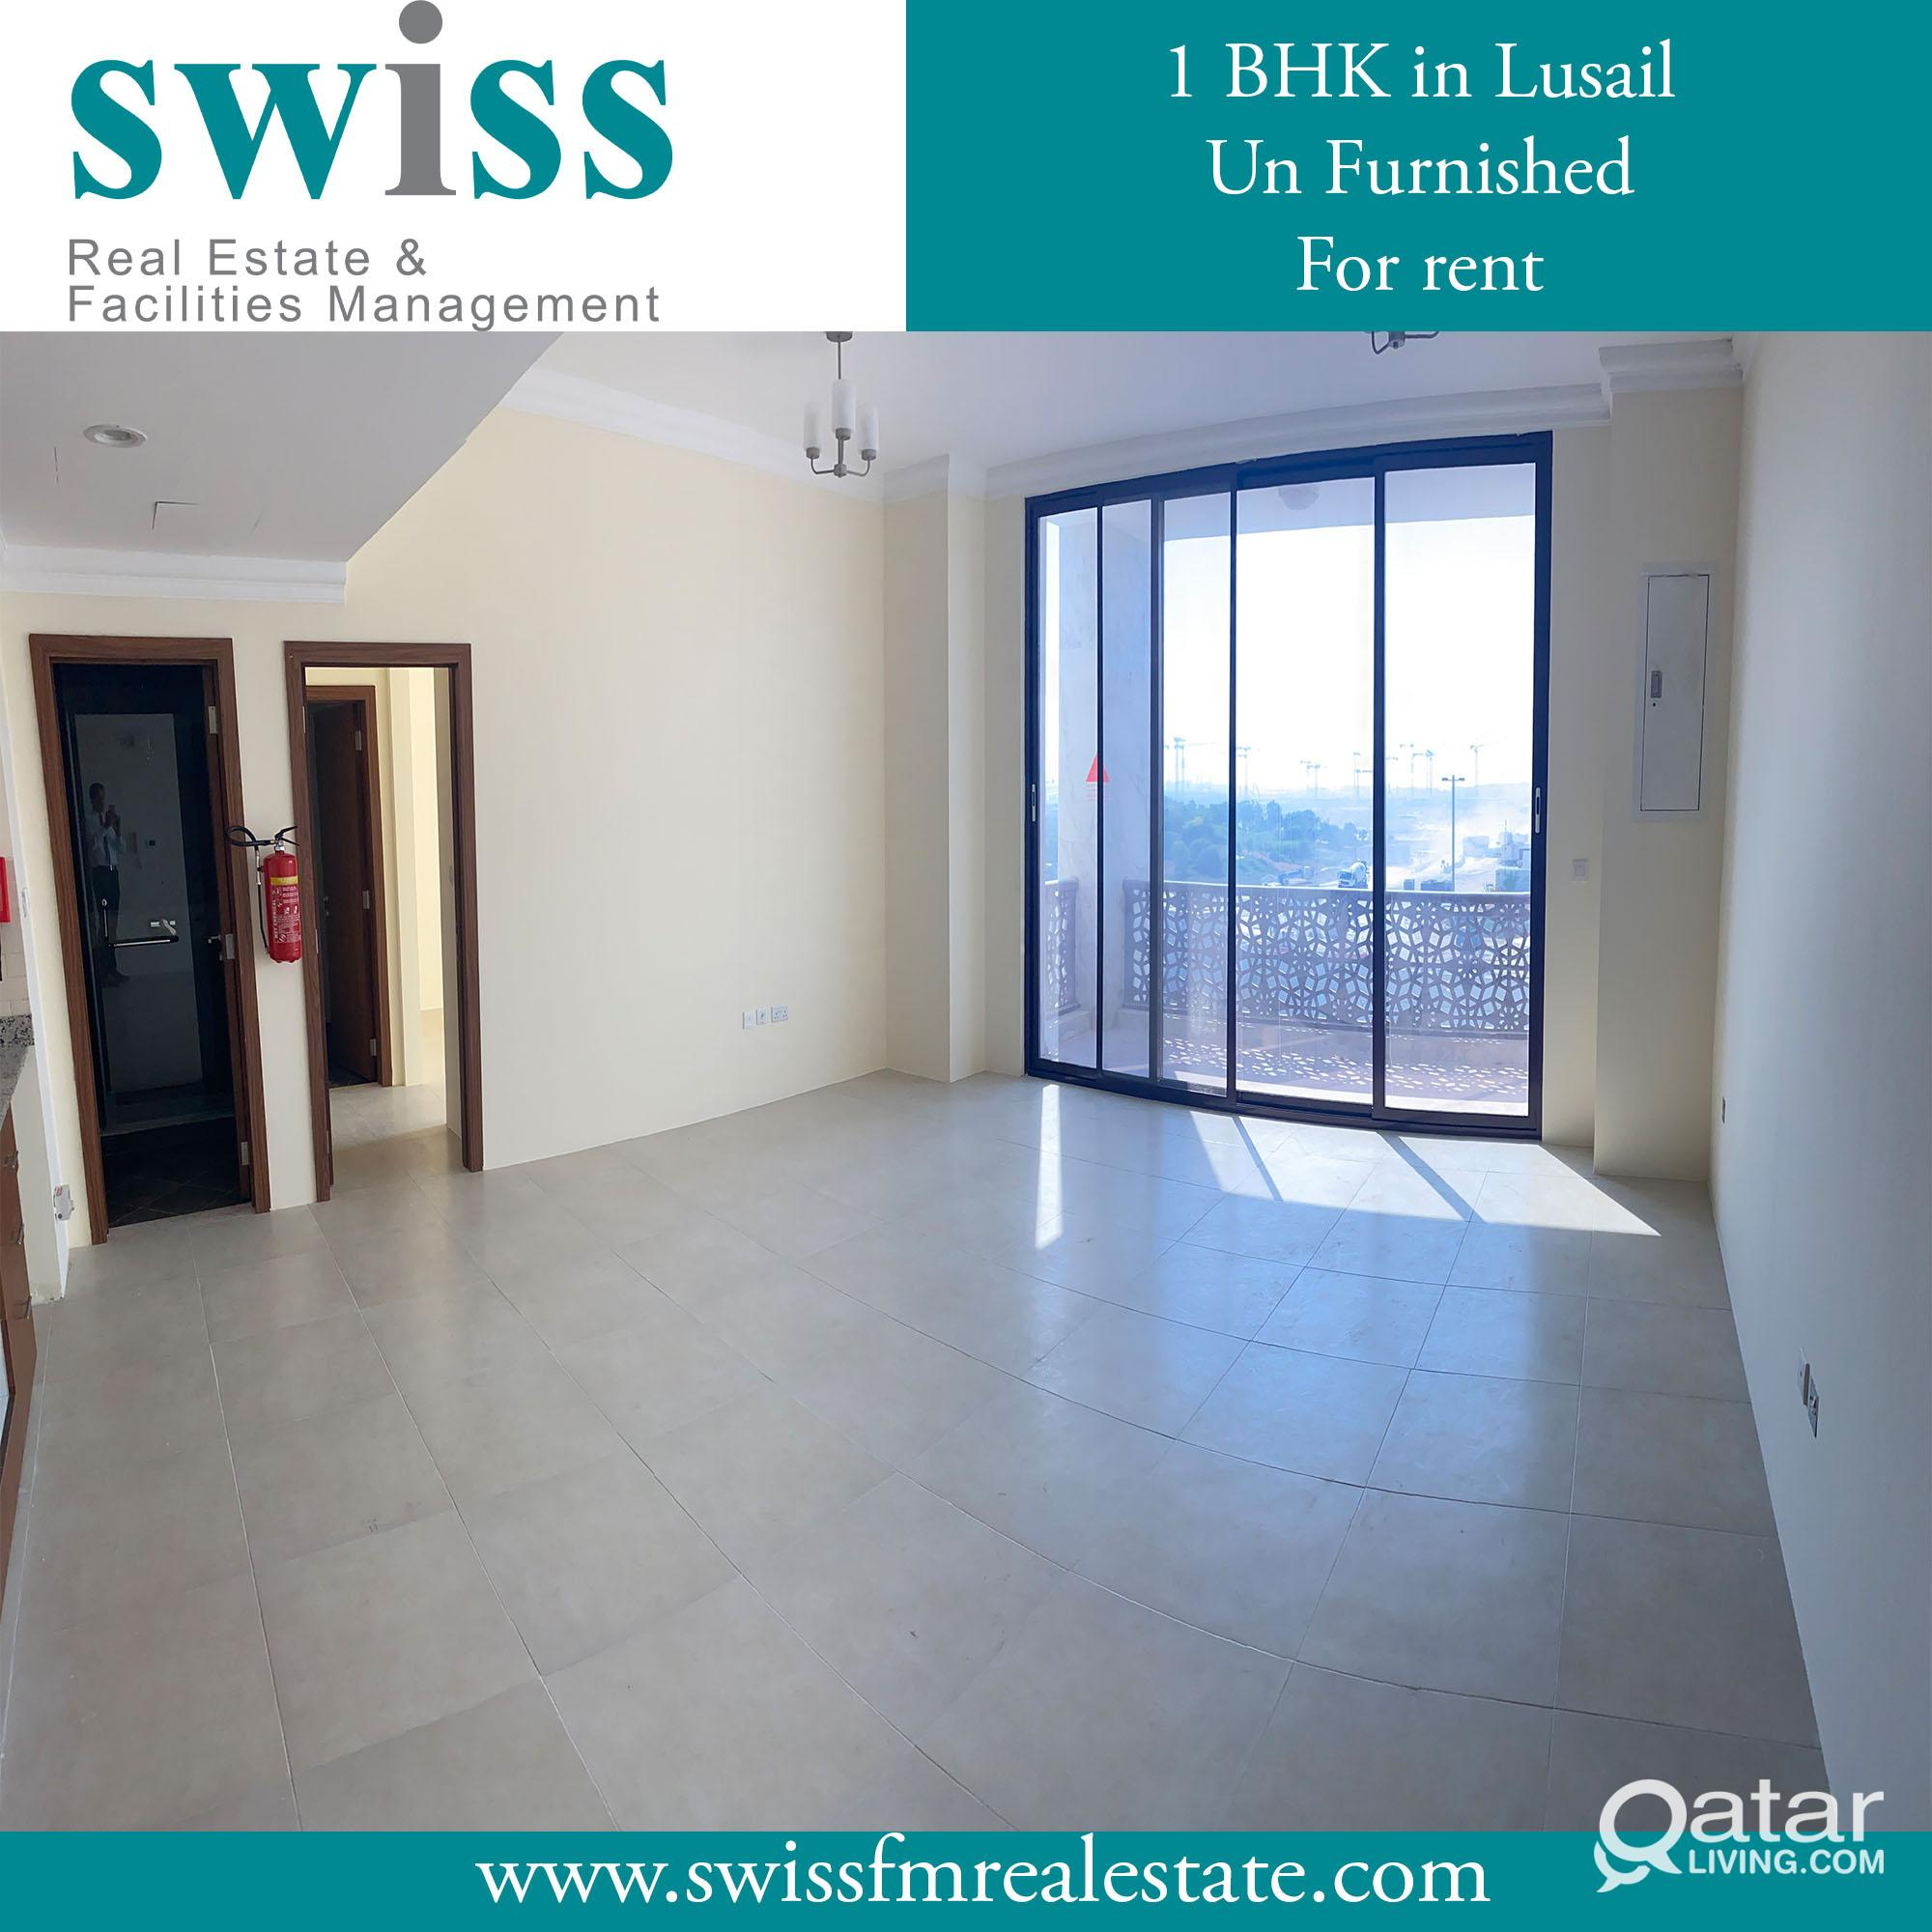 1 BHK unfurnished in Lusail for rent with a  Month